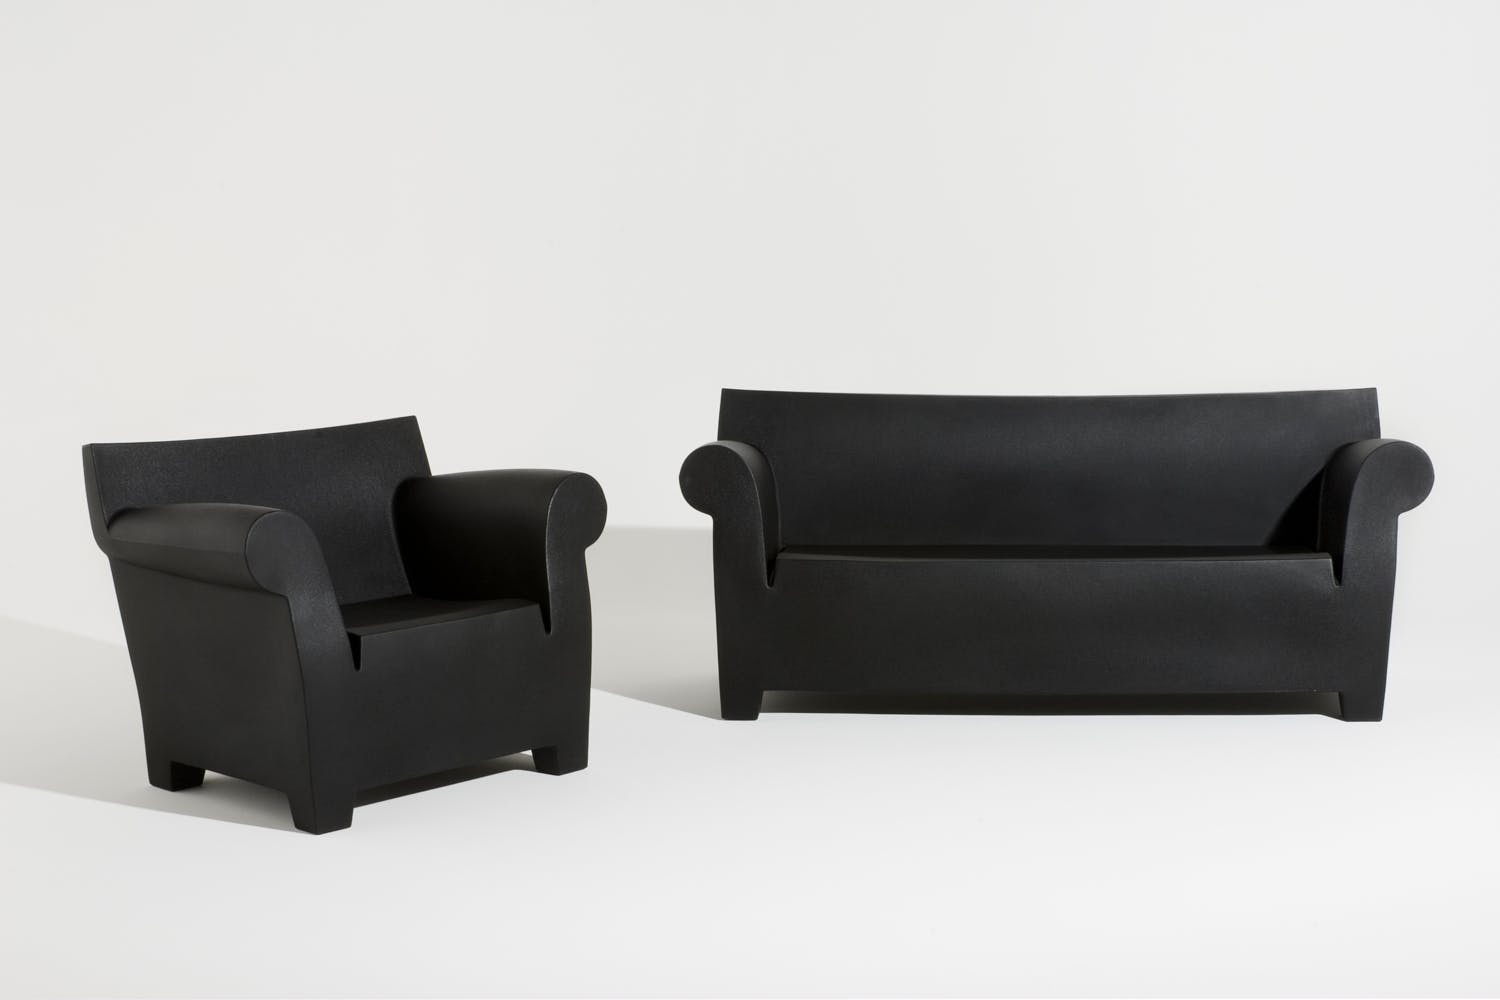 bubble club sofa armchair by philippe starck for kartell space furniture. Black Bedroom Furniture Sets. Home Design Ideas